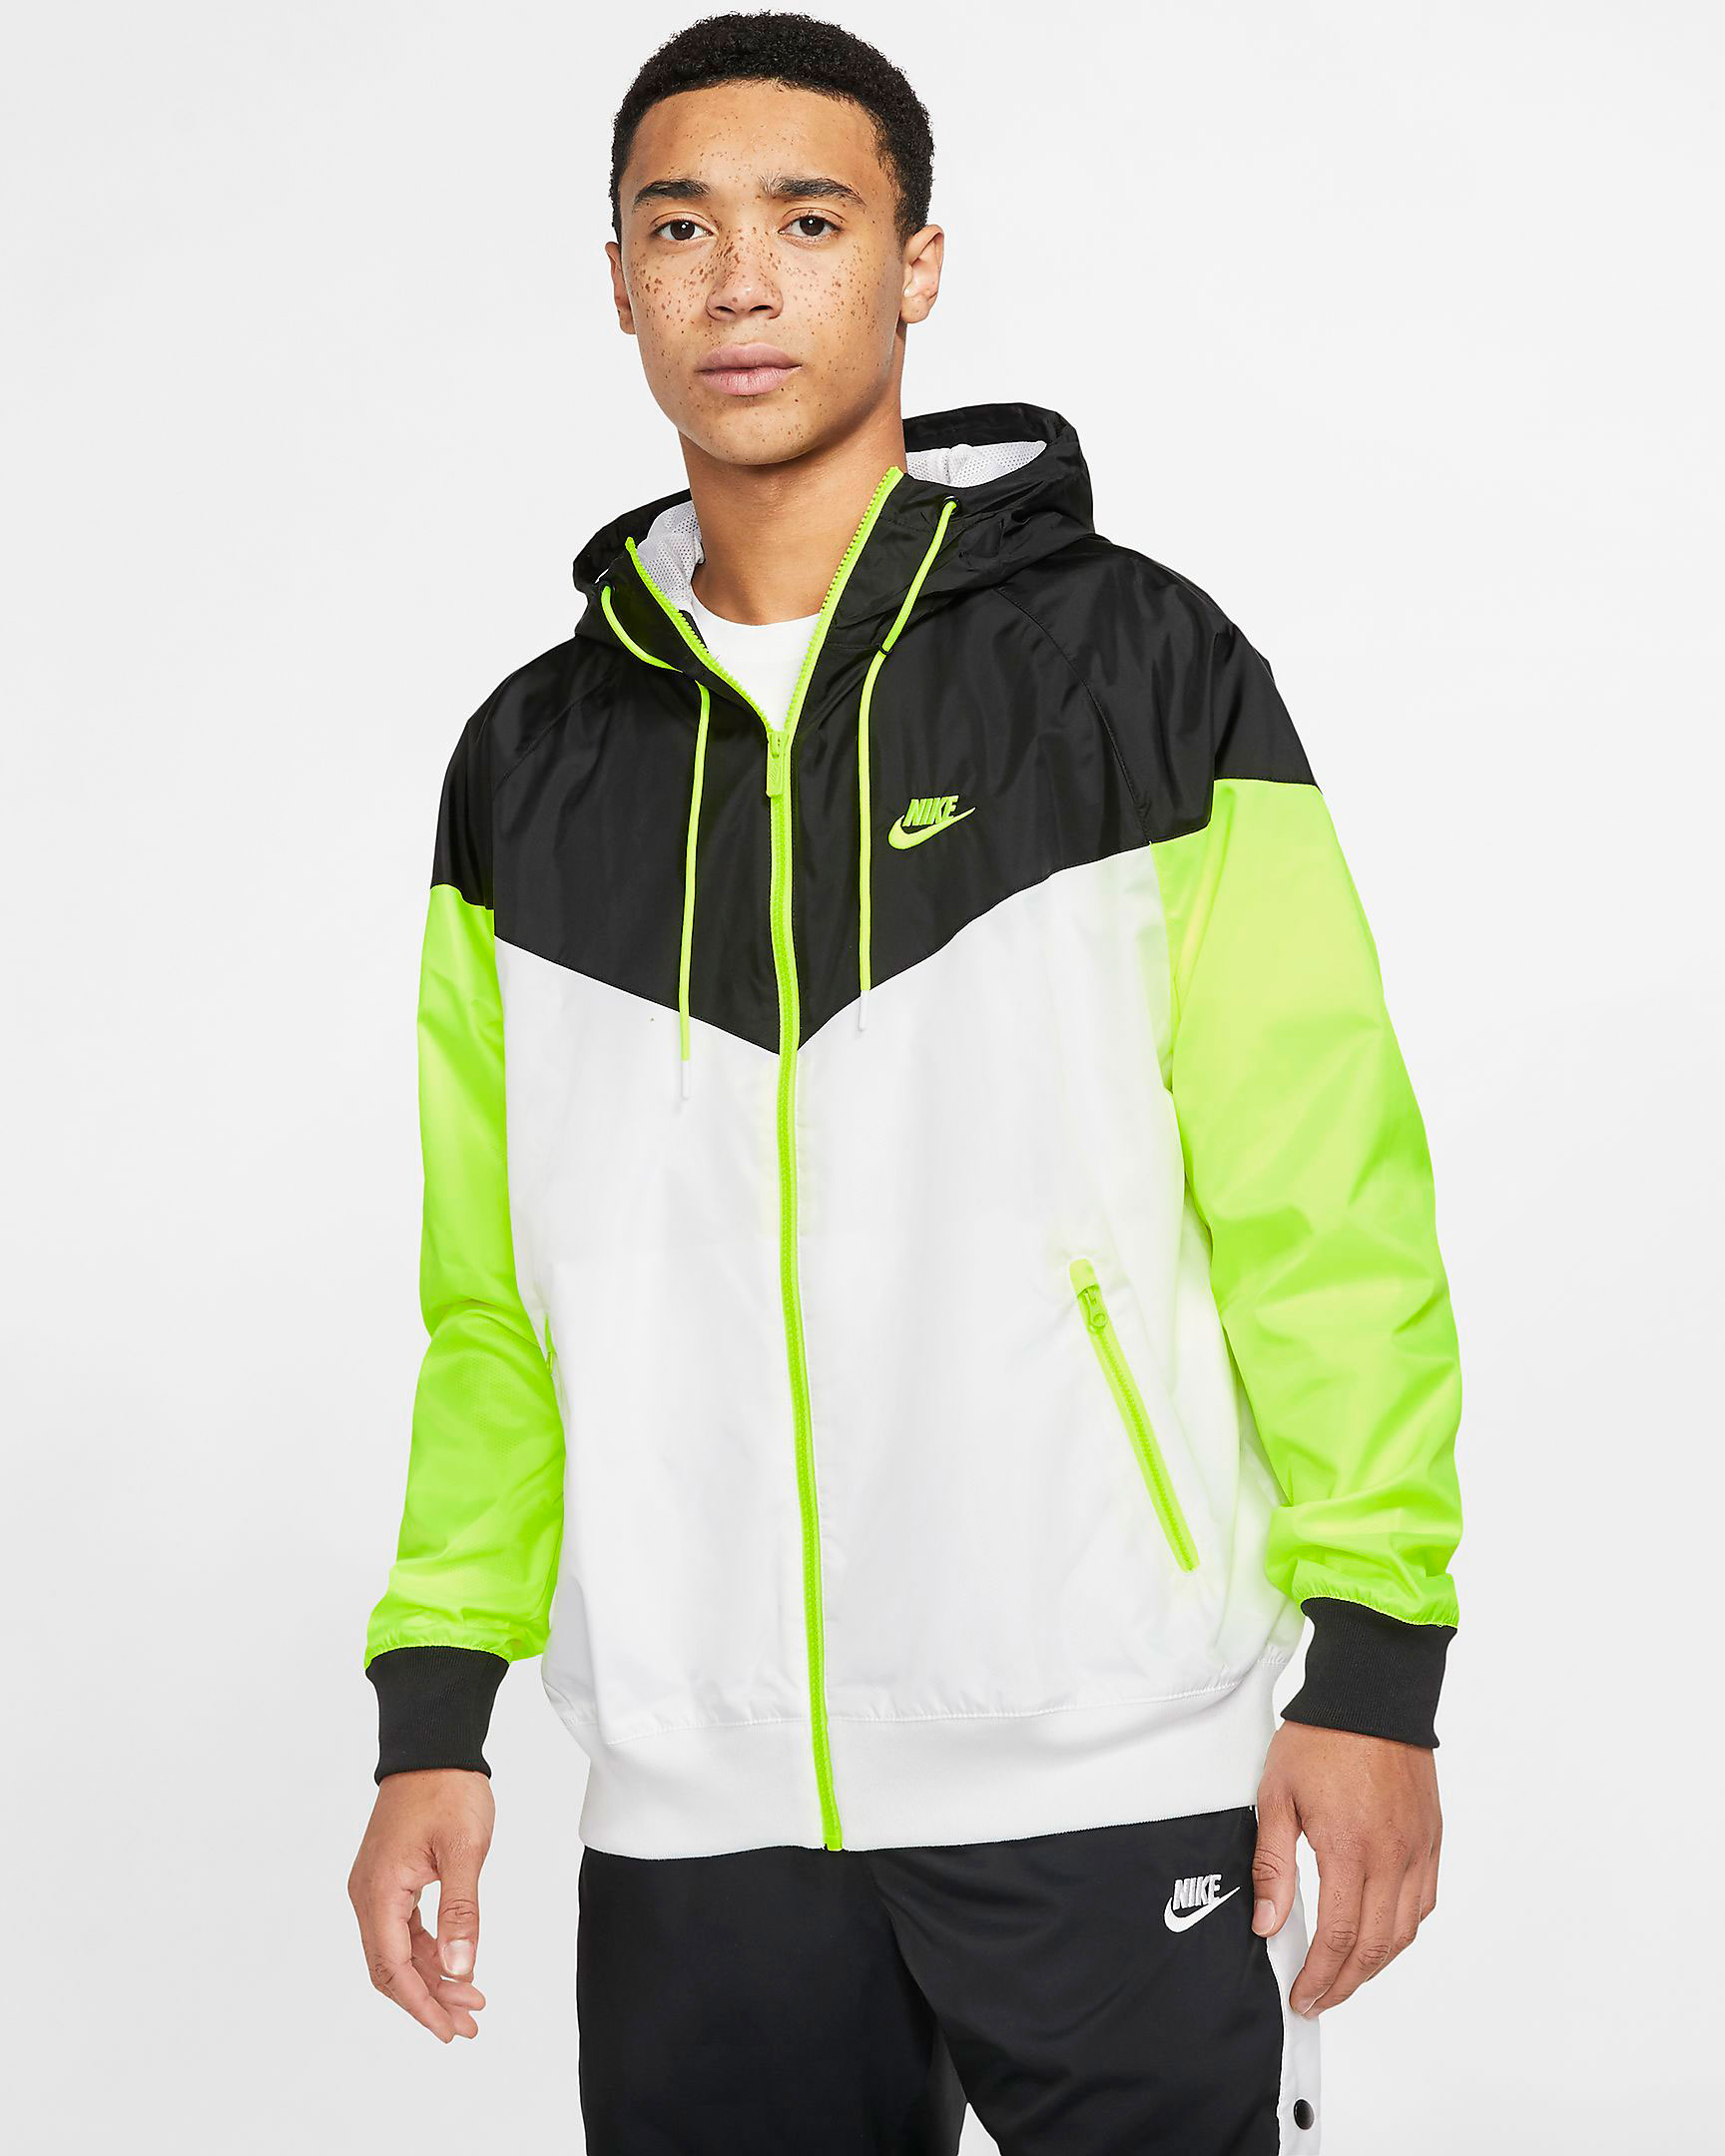 nike-air-max-90-og-volt-jacket-match-1